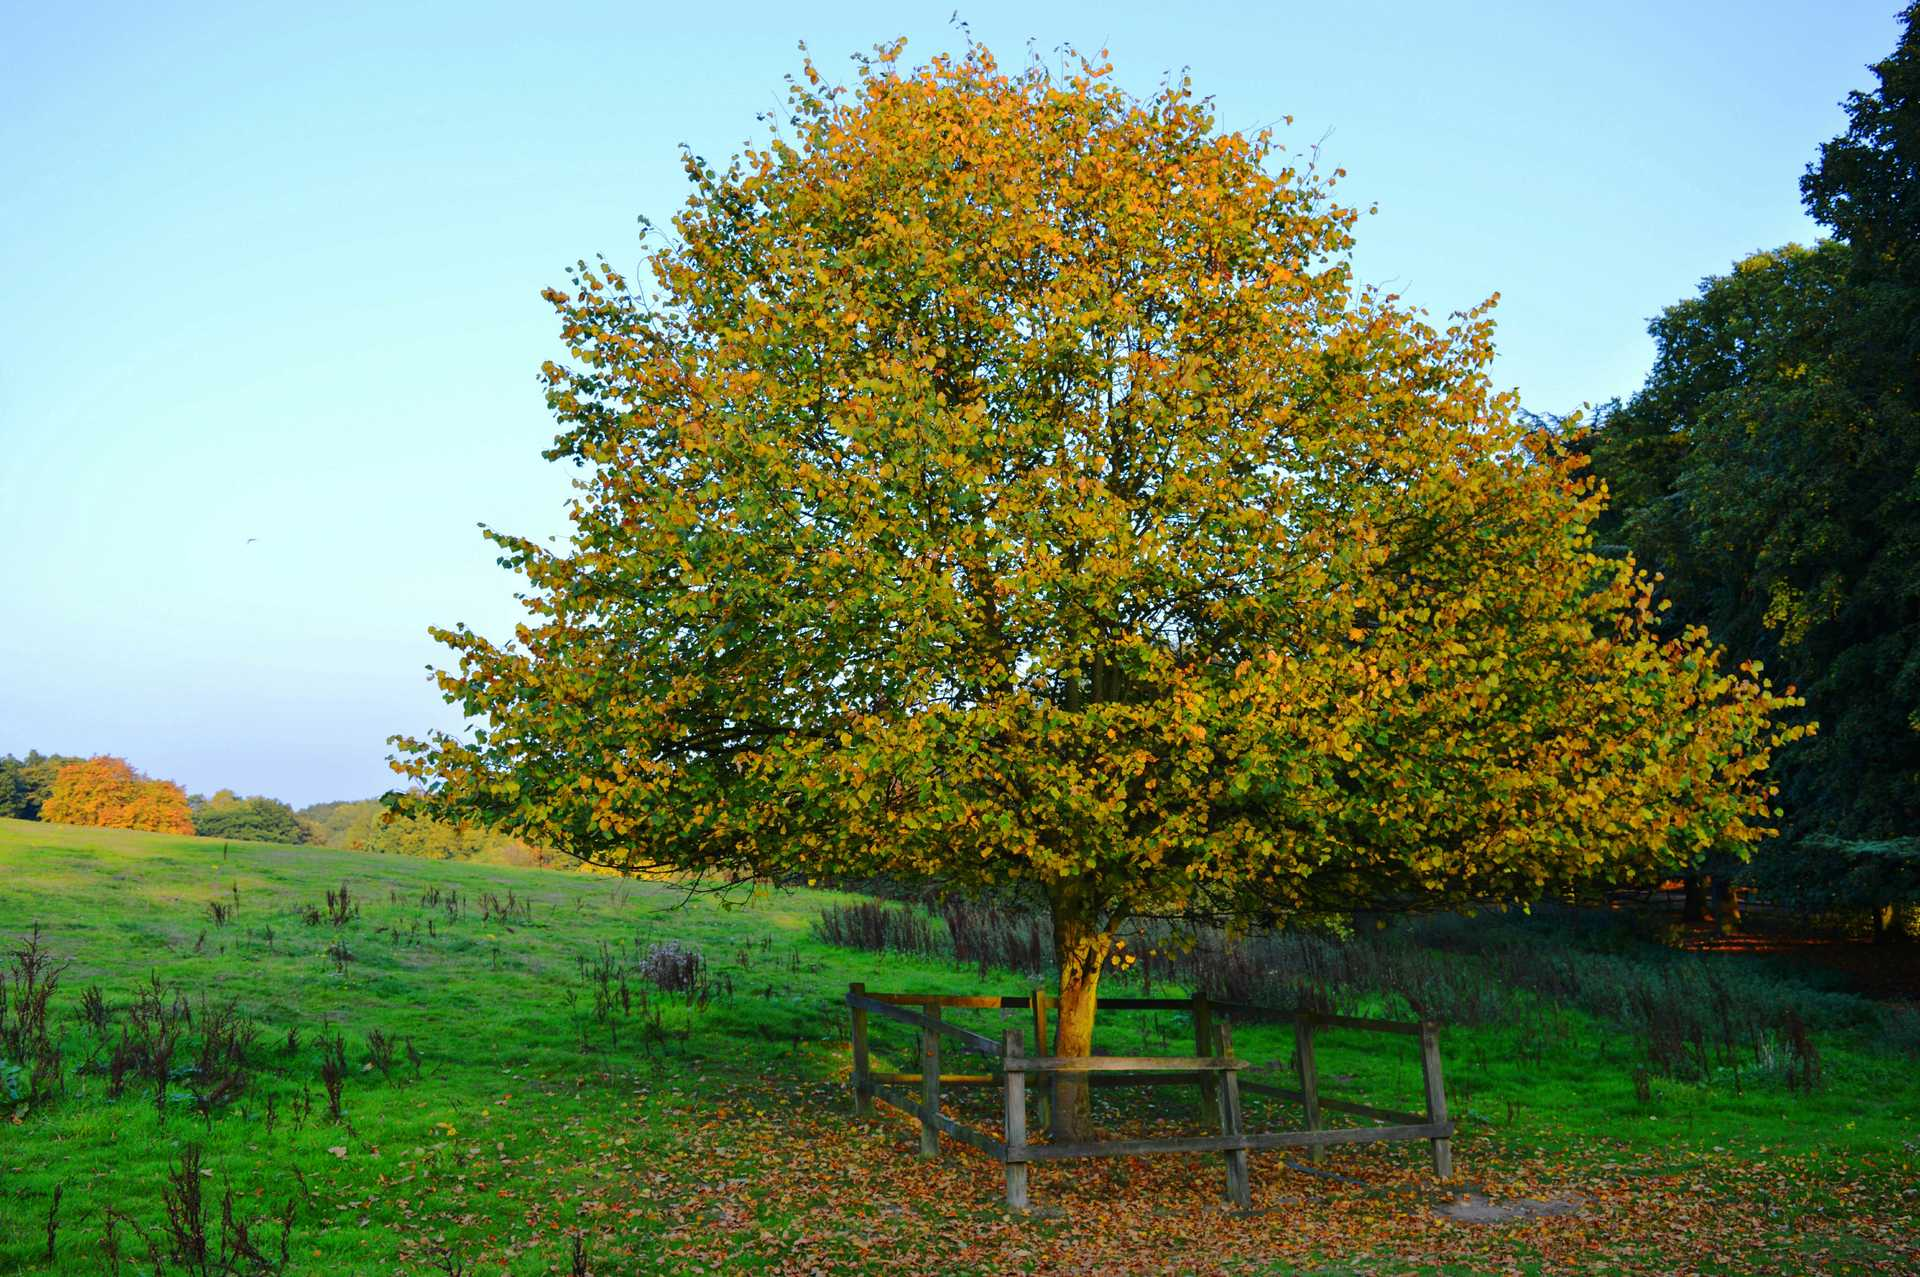 autumn landscape. autumn colors | madi19, branch, countryside, garden